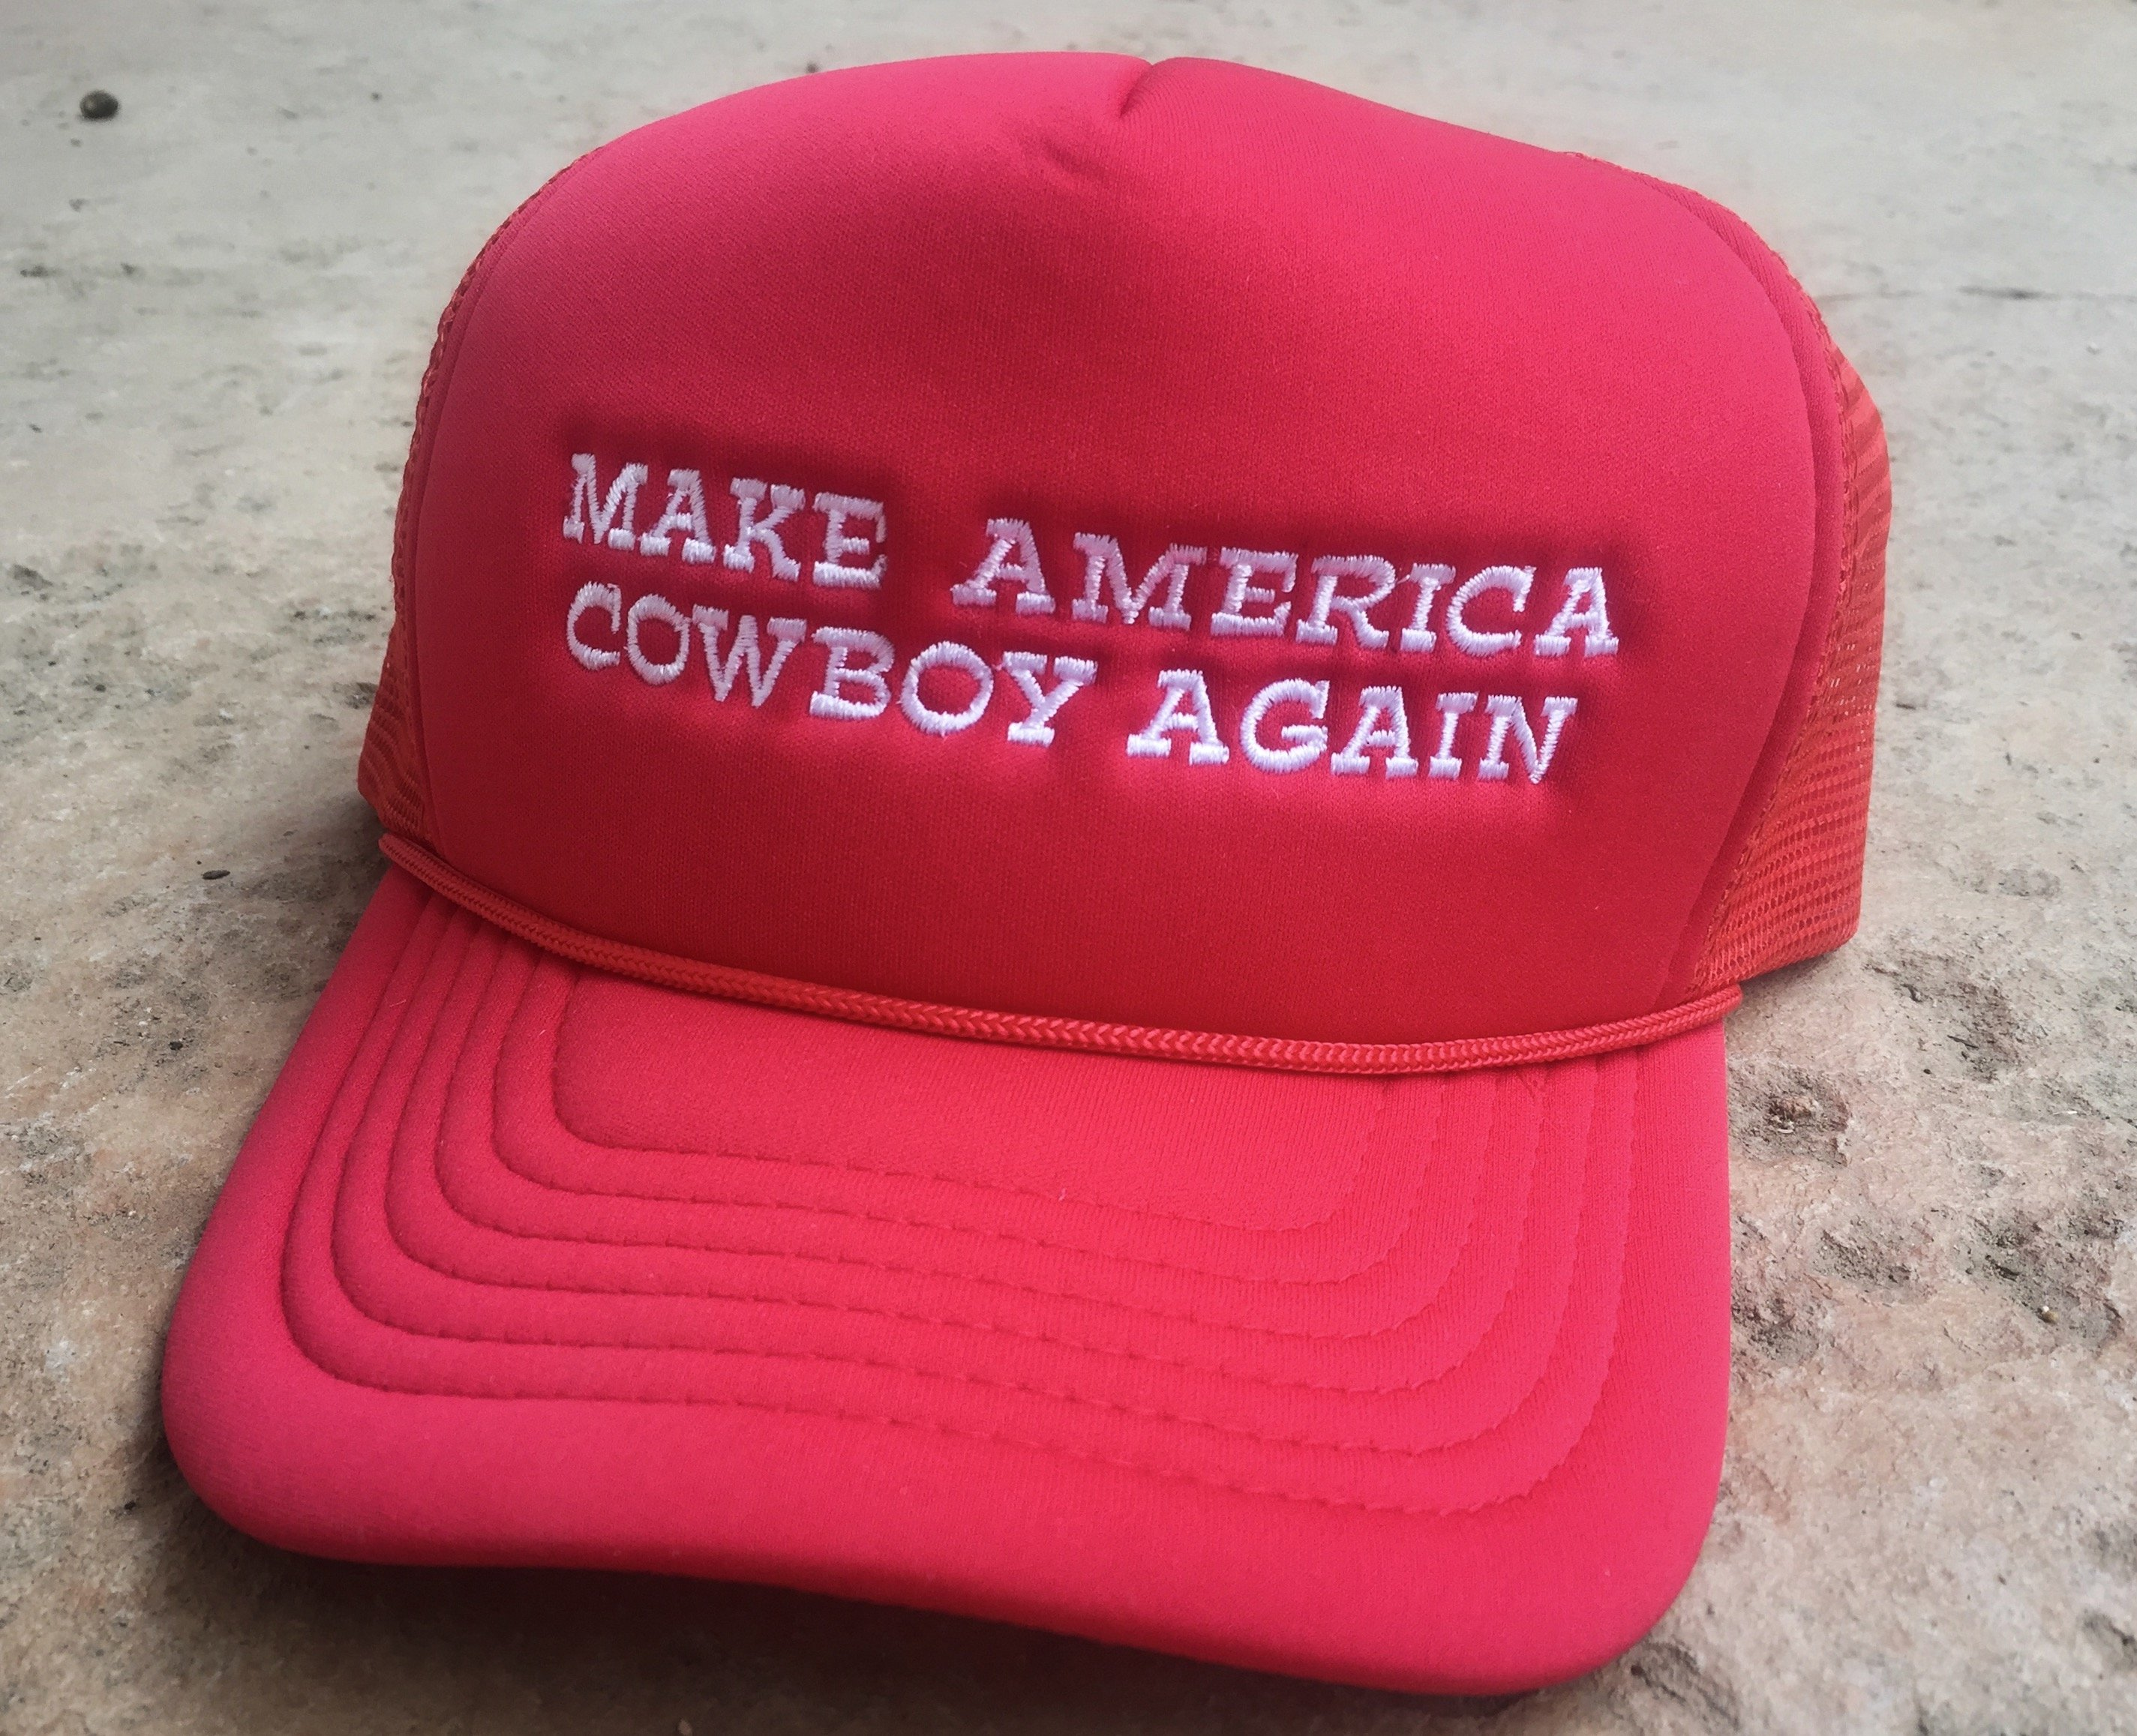 Make America Cowboy Again™ Trucker Hat